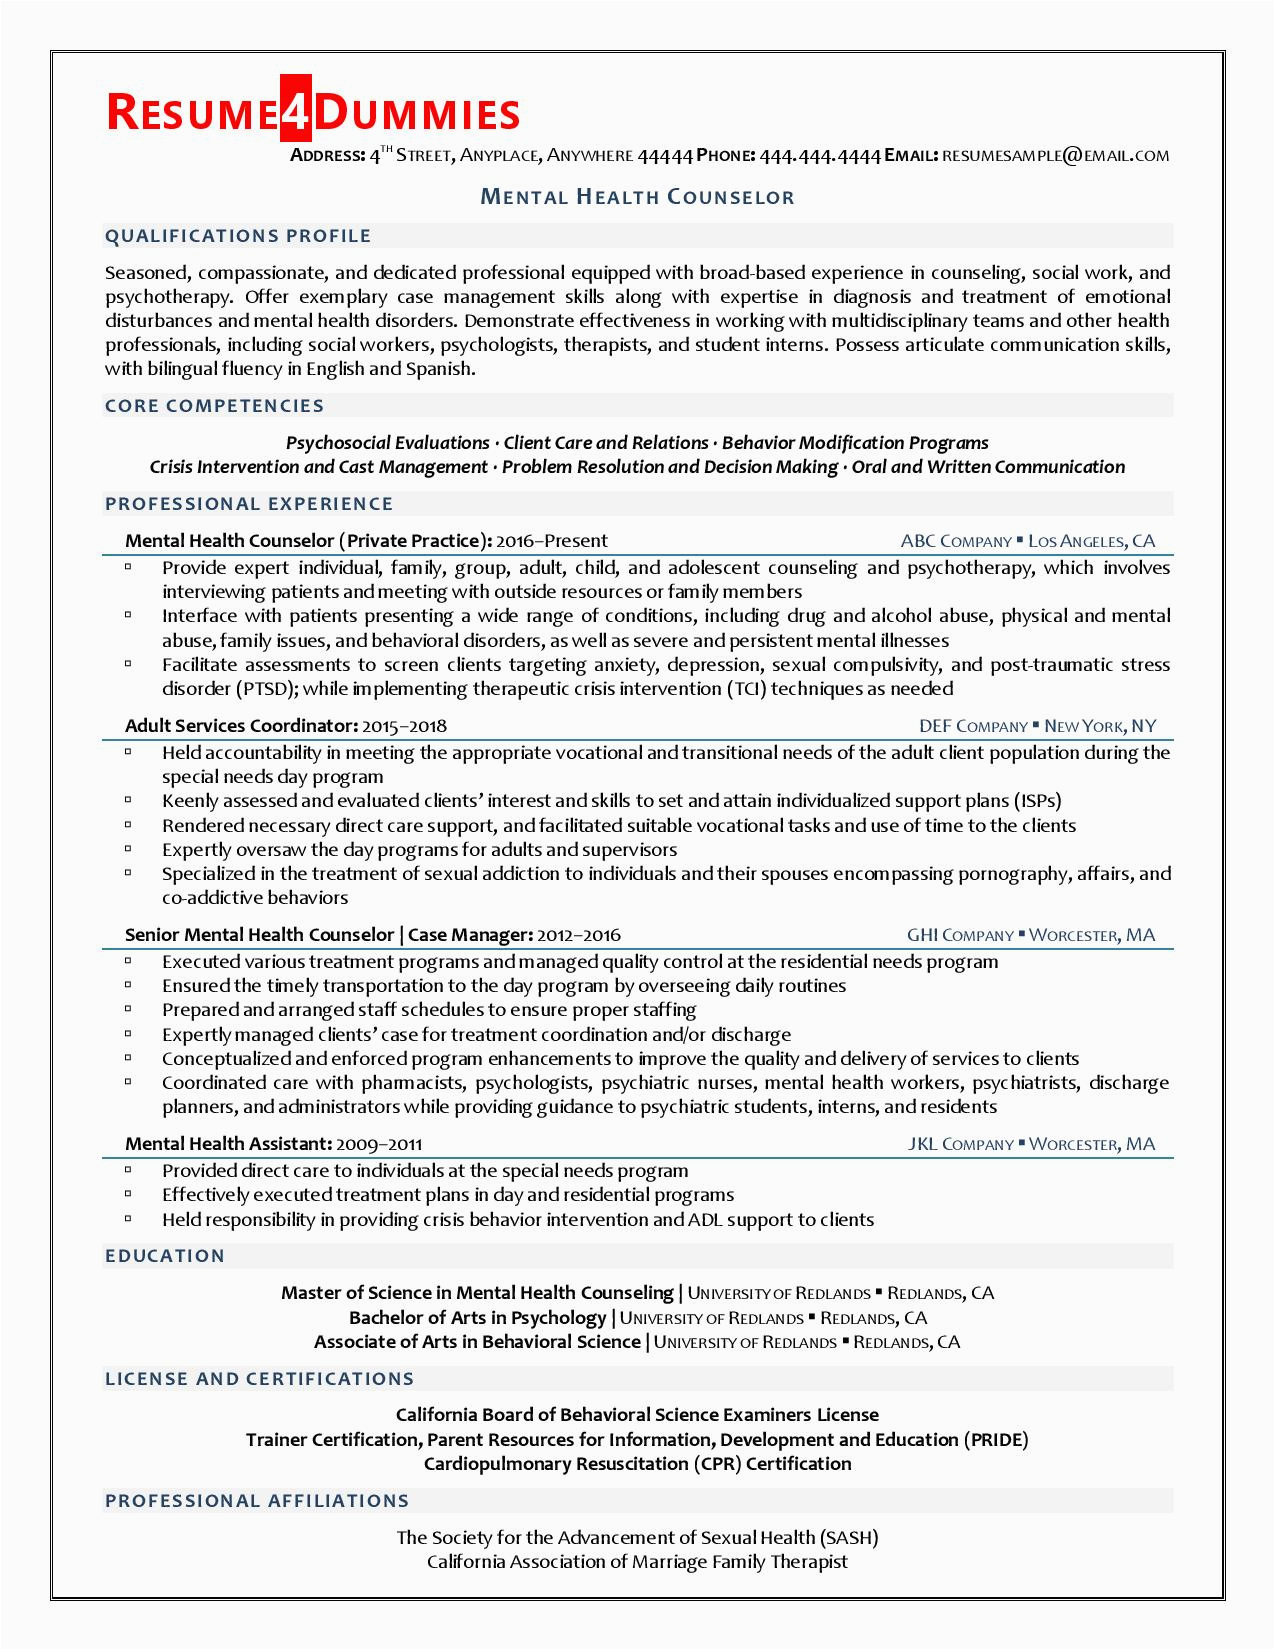 Resume Samples for Mental Health Counselors Mental Health Counselor Resume Example